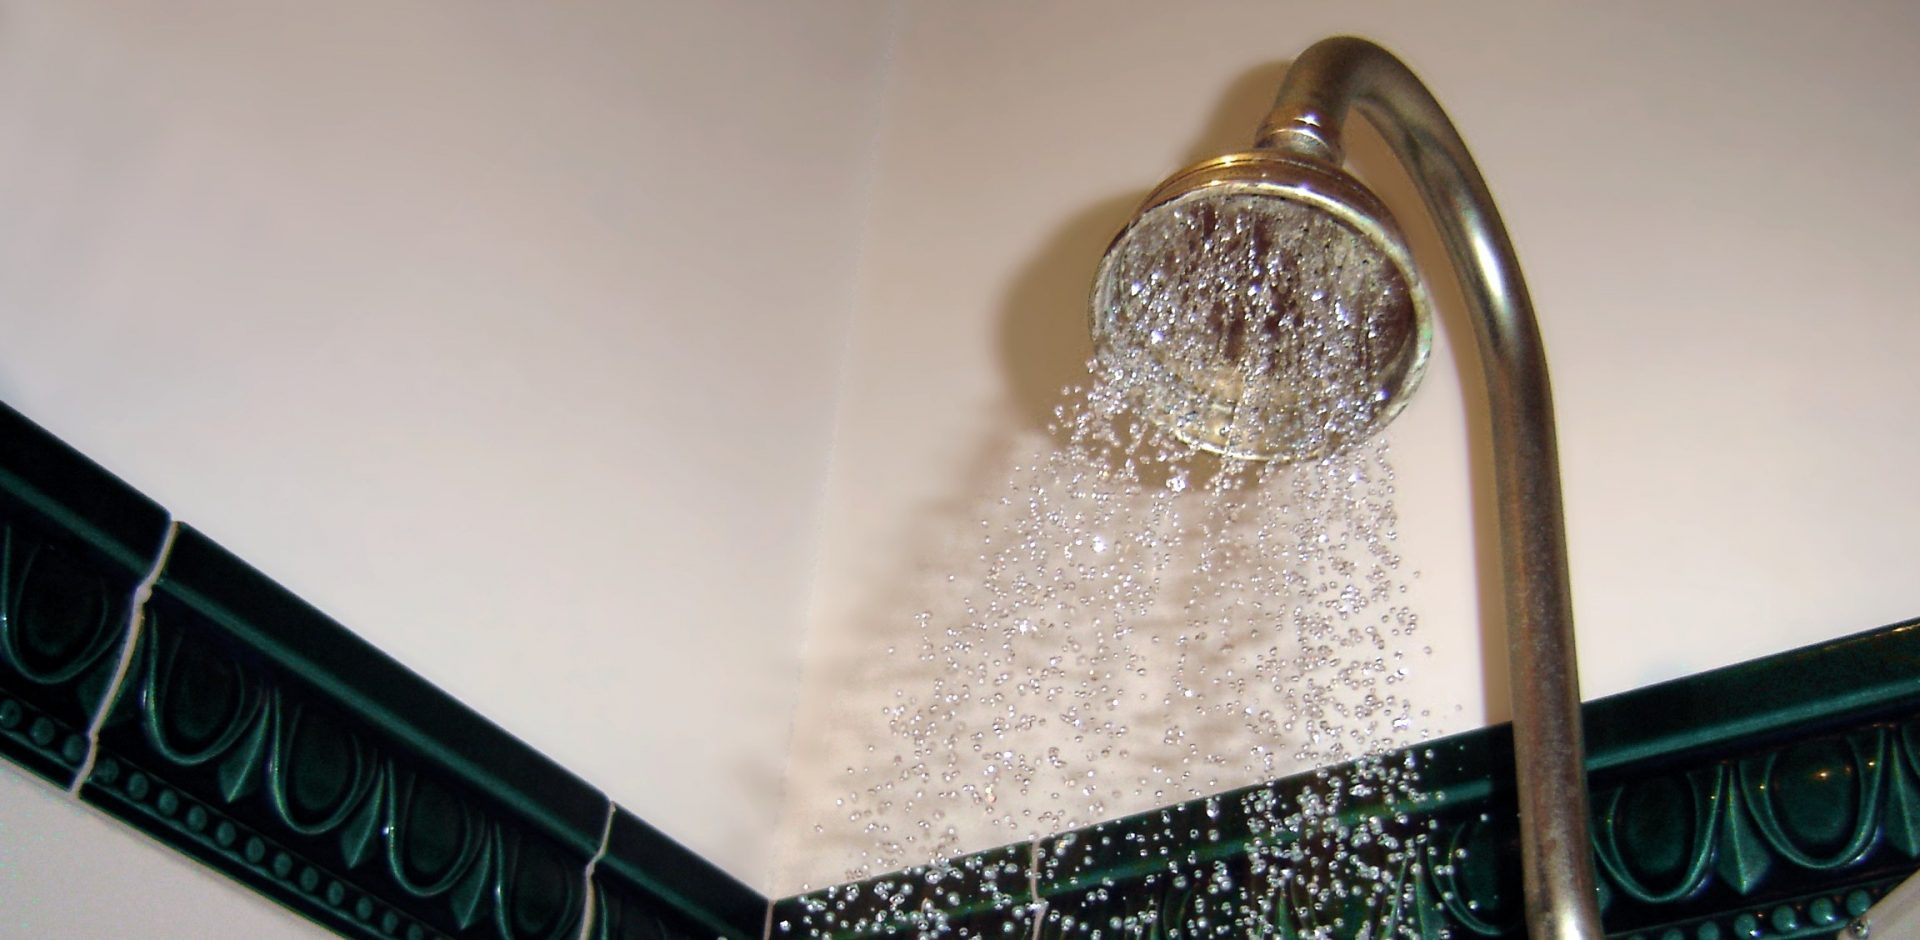 A Turned On Shower